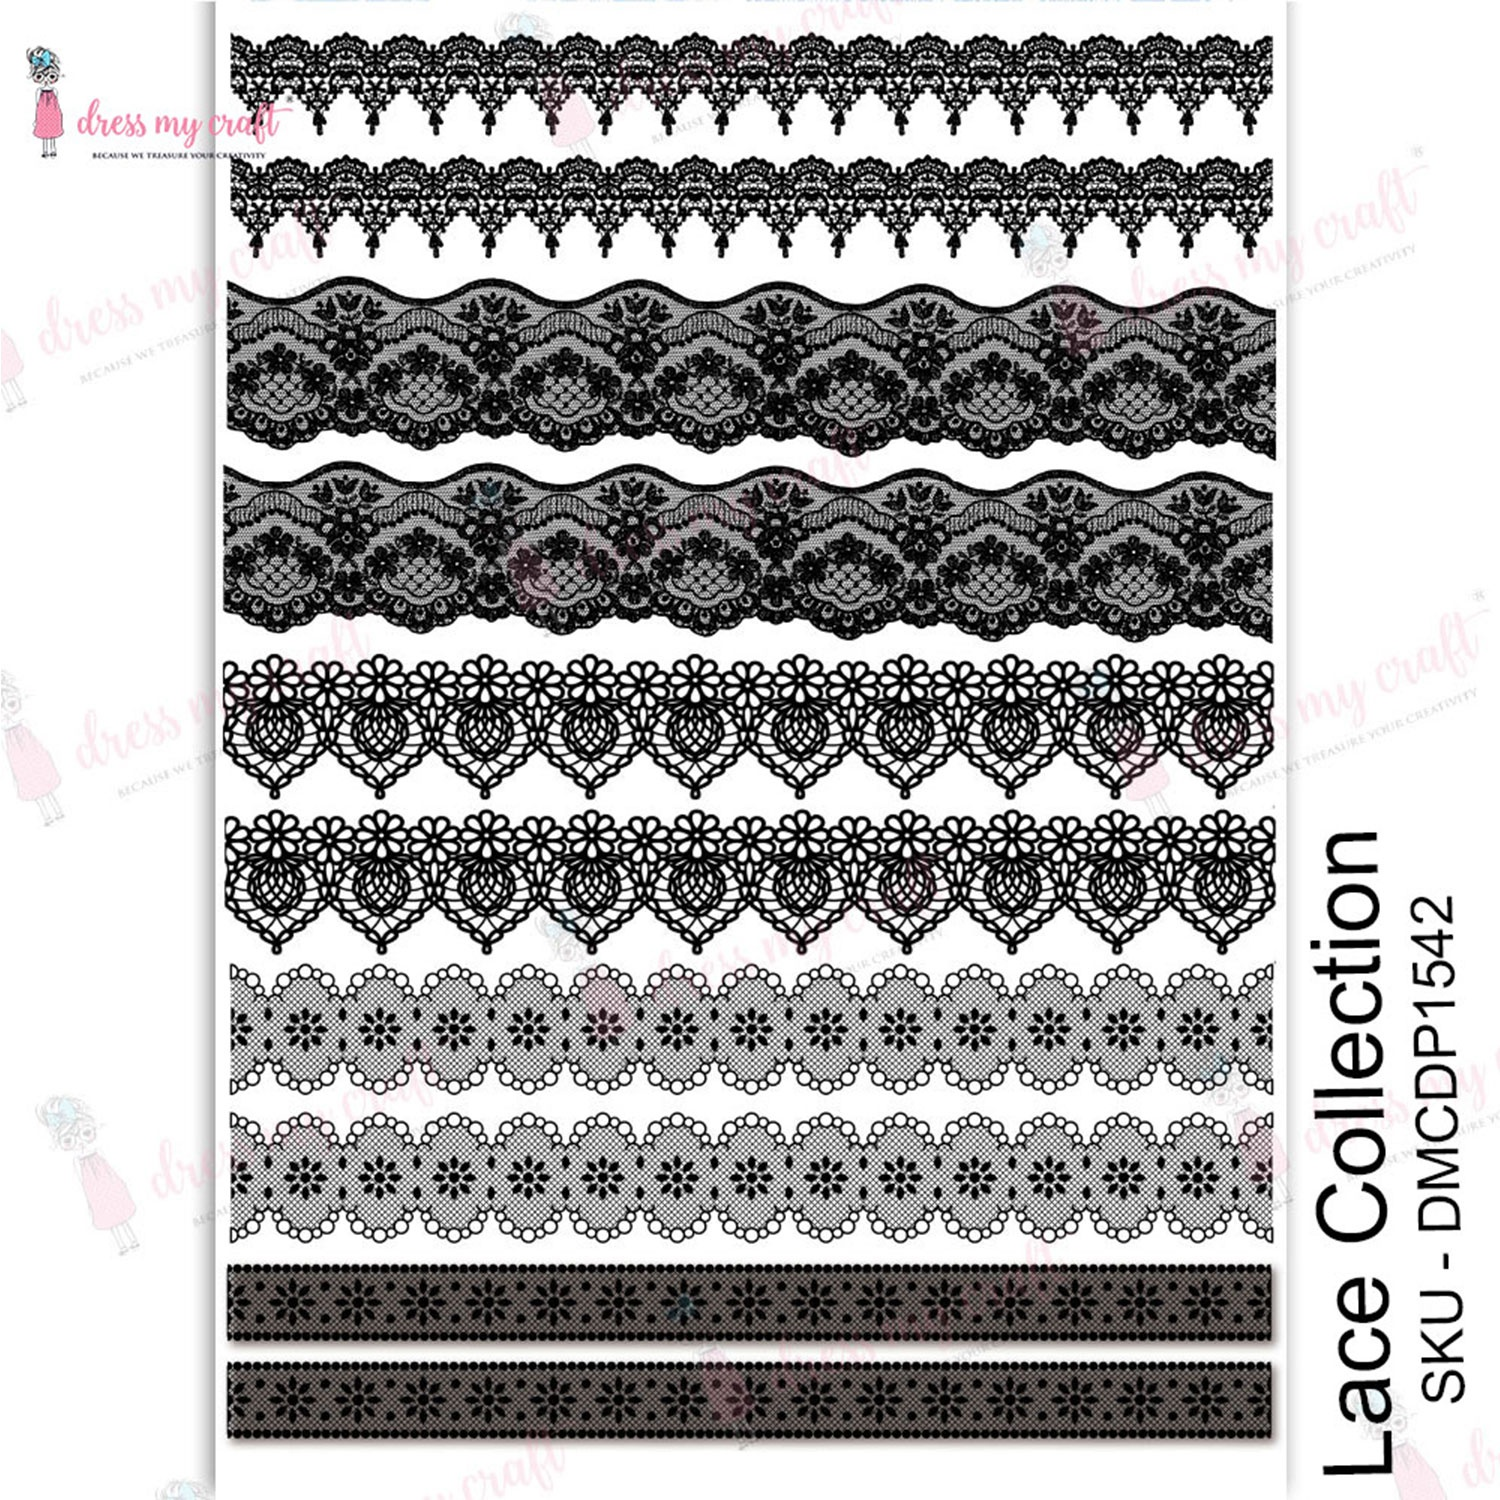 Dress My Craft Transfer Me Sheet A4-Lace Collection